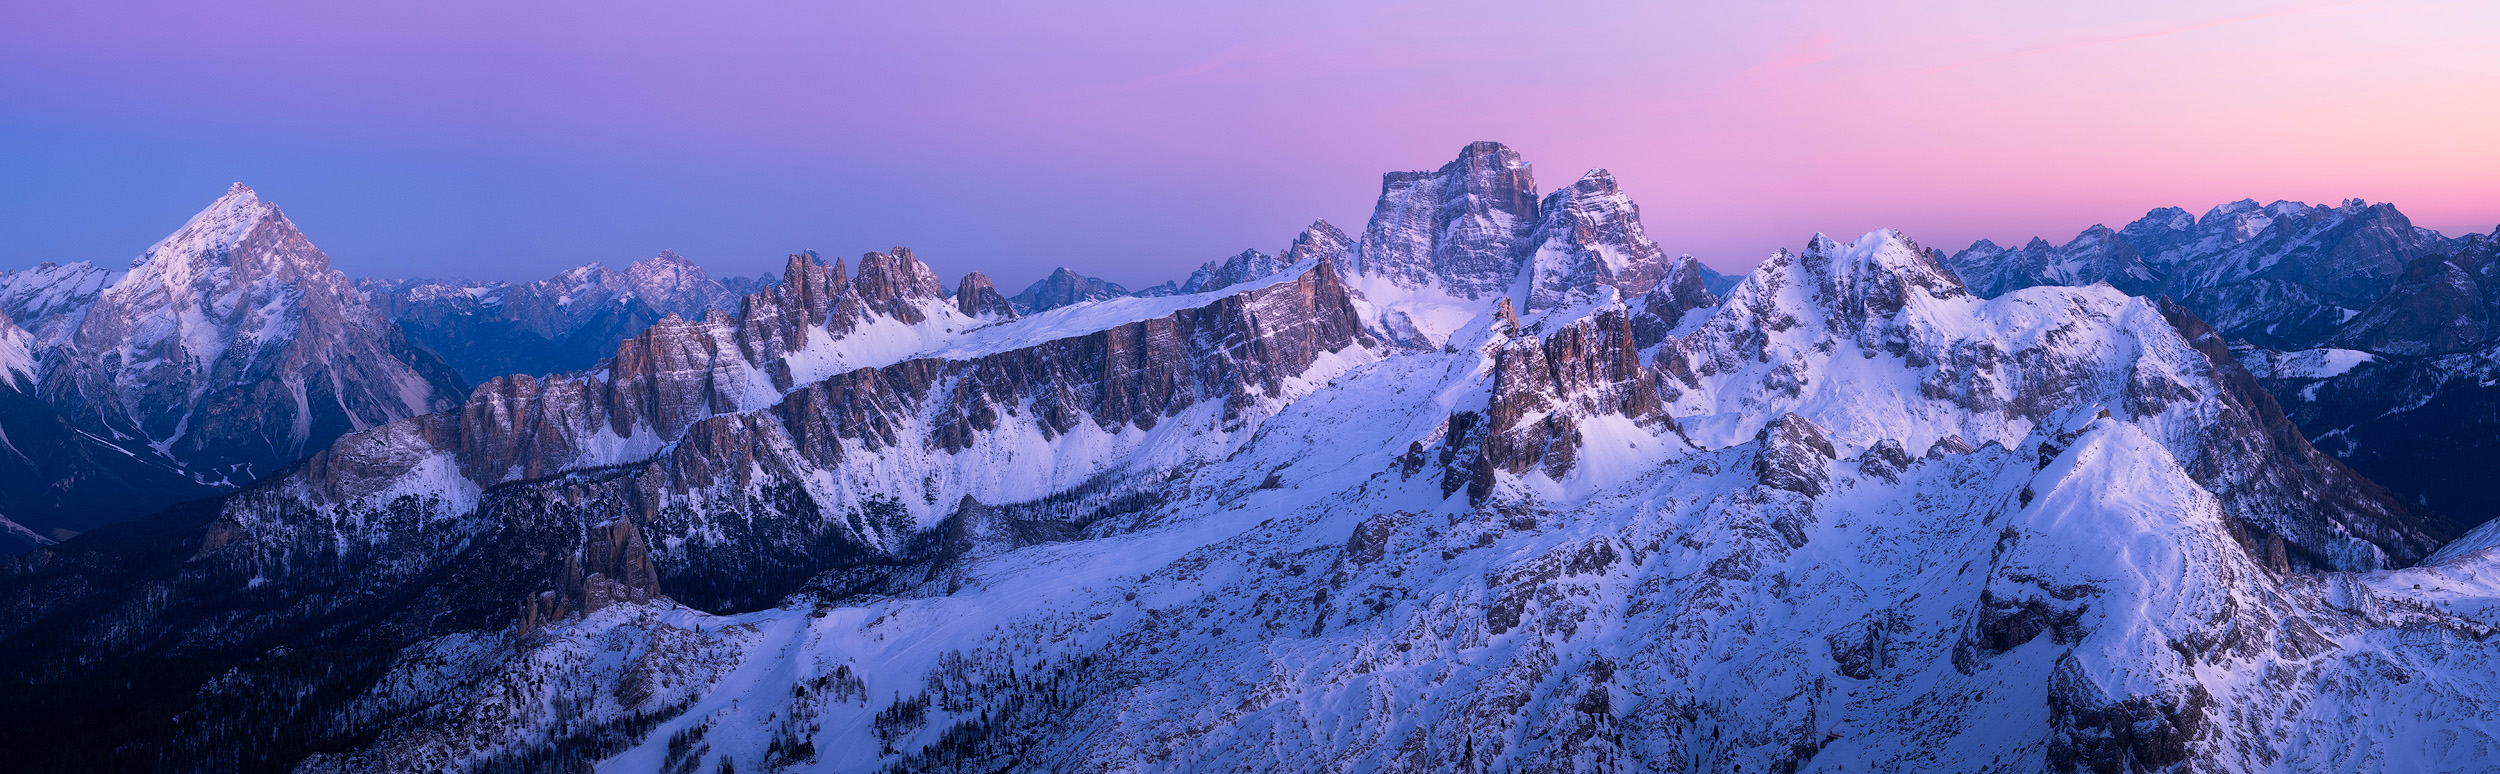 Lagazuoi Panorama   A panorama from the top of 2750m Lagazuoi just after the sun has gone down in the Dolomites. From the left there is the peak of Antelao, then the jagged spires of the ridge of Croda da Lago with the tall peak of Pelmo in the background. In front of Pelmo is Ra Gusela, the peak that towers above Passo Giau